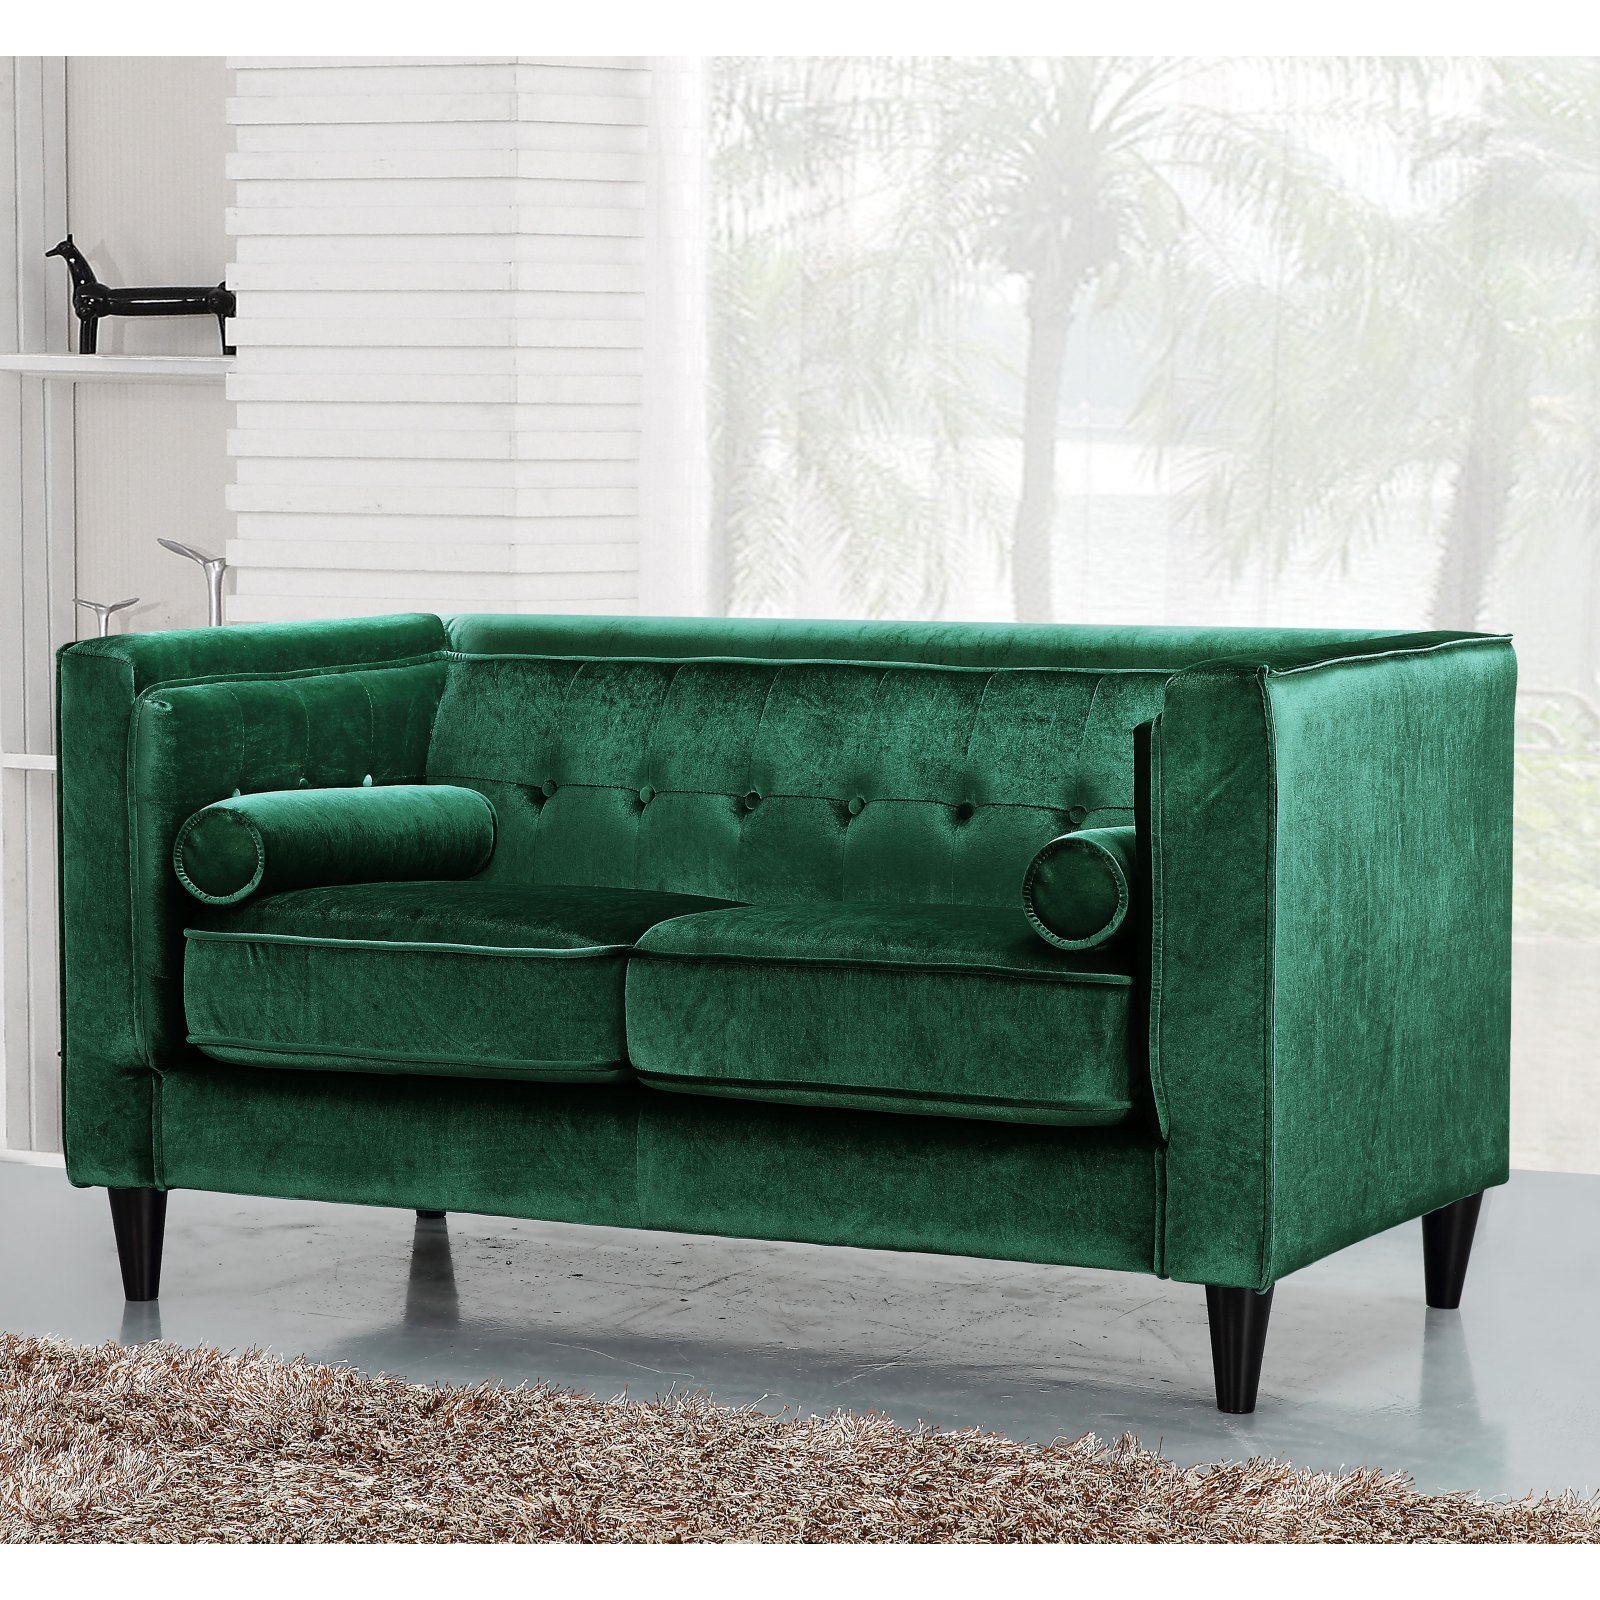 Meridian Furniture Inc Taylor Loveseat with Accent Pillows